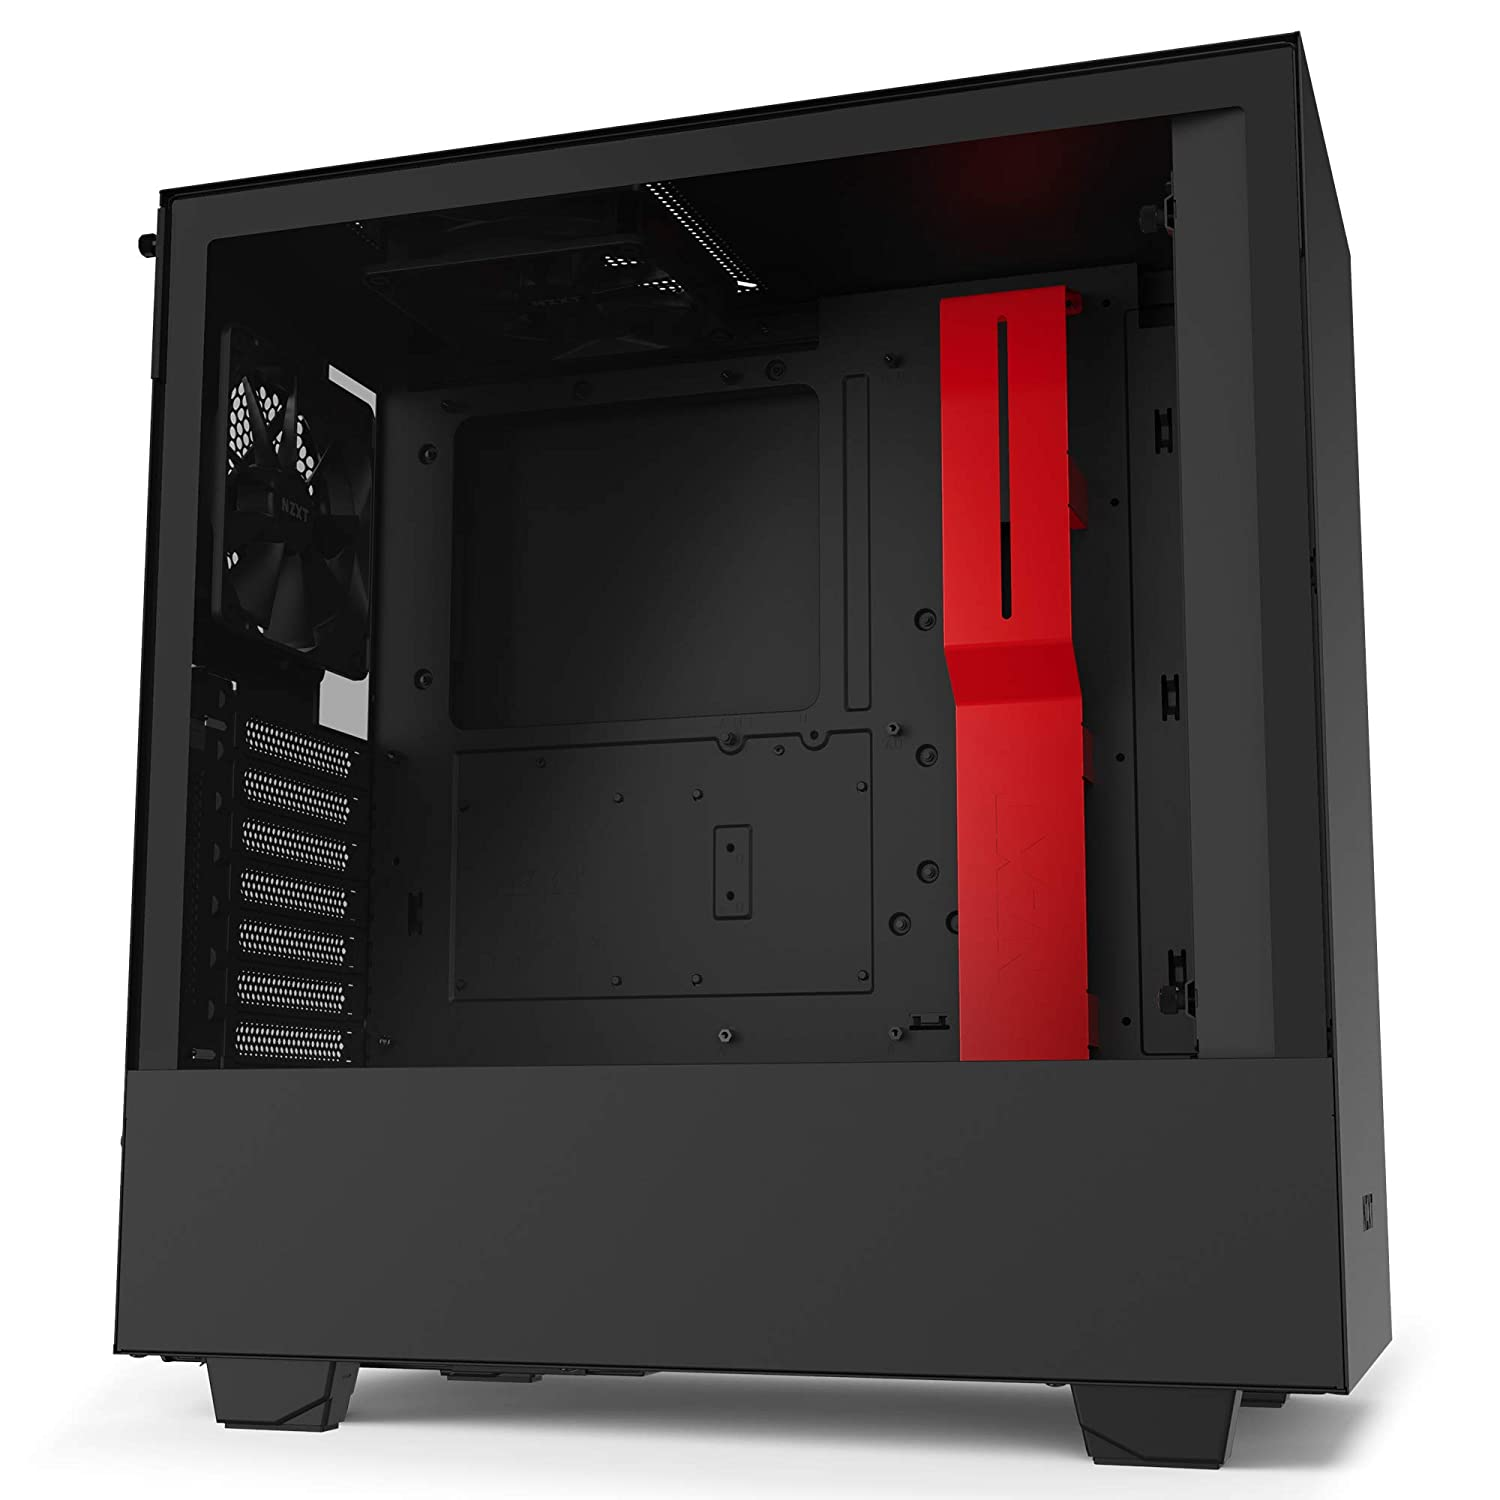 NZXT H510 - Compact Atx Mid-Tower PC Gaming Case - Front I/O USB Type-C Port - Tempered Glass Side Panel - Cable Management System - Water-Cooling Ready - Steel Construction - Black/Red